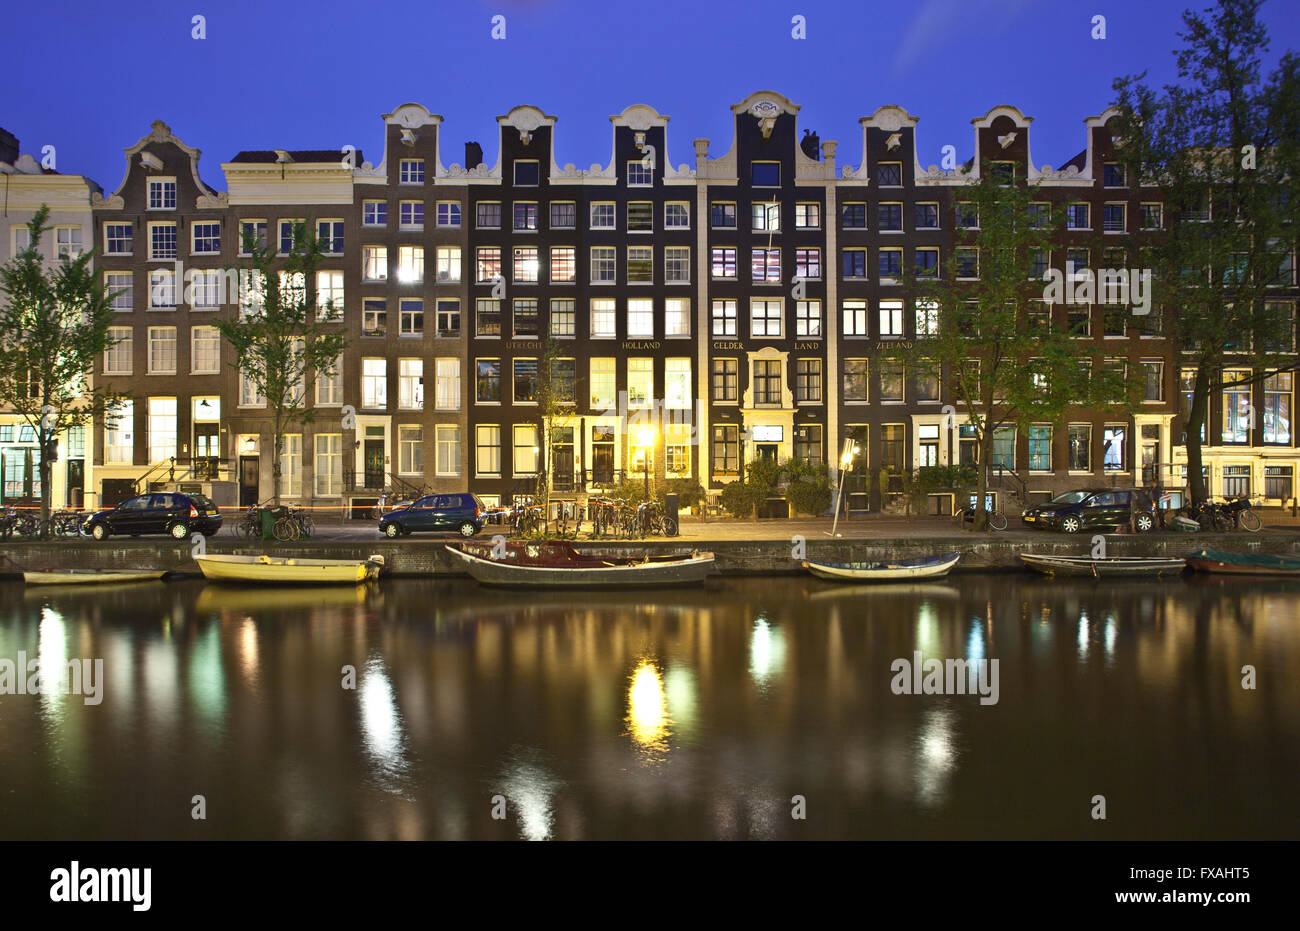 Canal houses, Prinsengracht, Amsterdam, Holland, The Netherlands - Stock Image